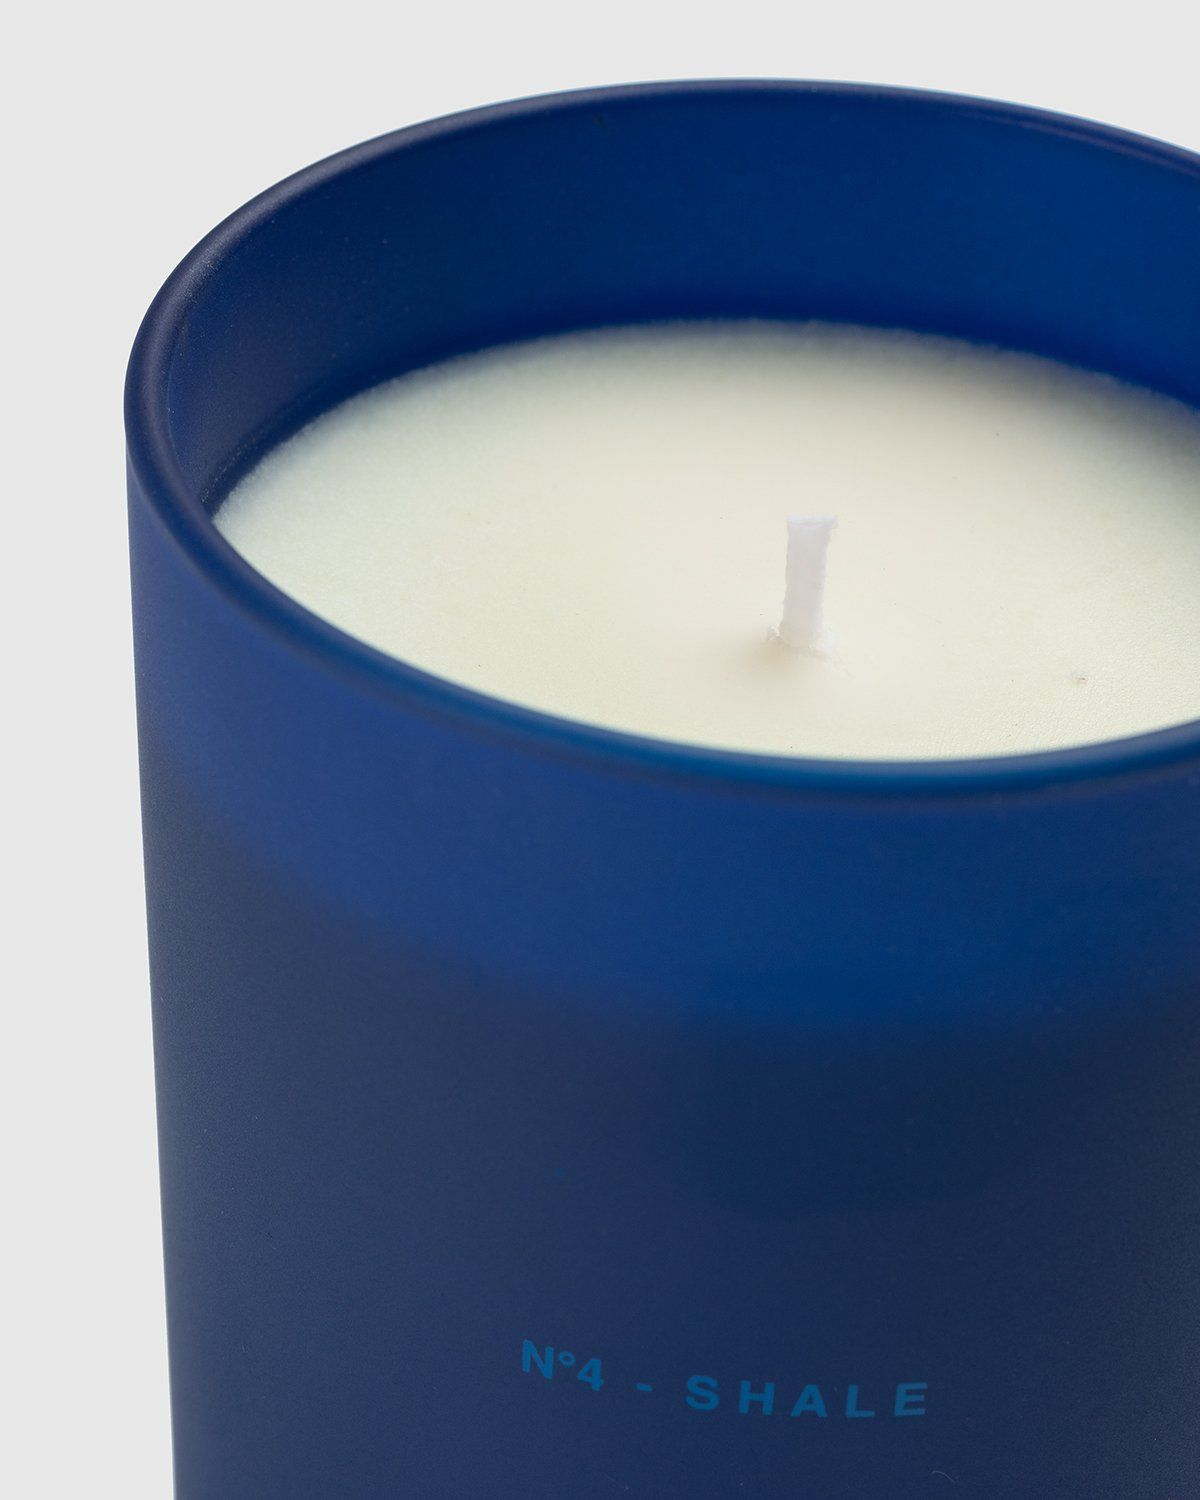 A-COLD-WALL* – No. 4 Shale Candle - Image 2